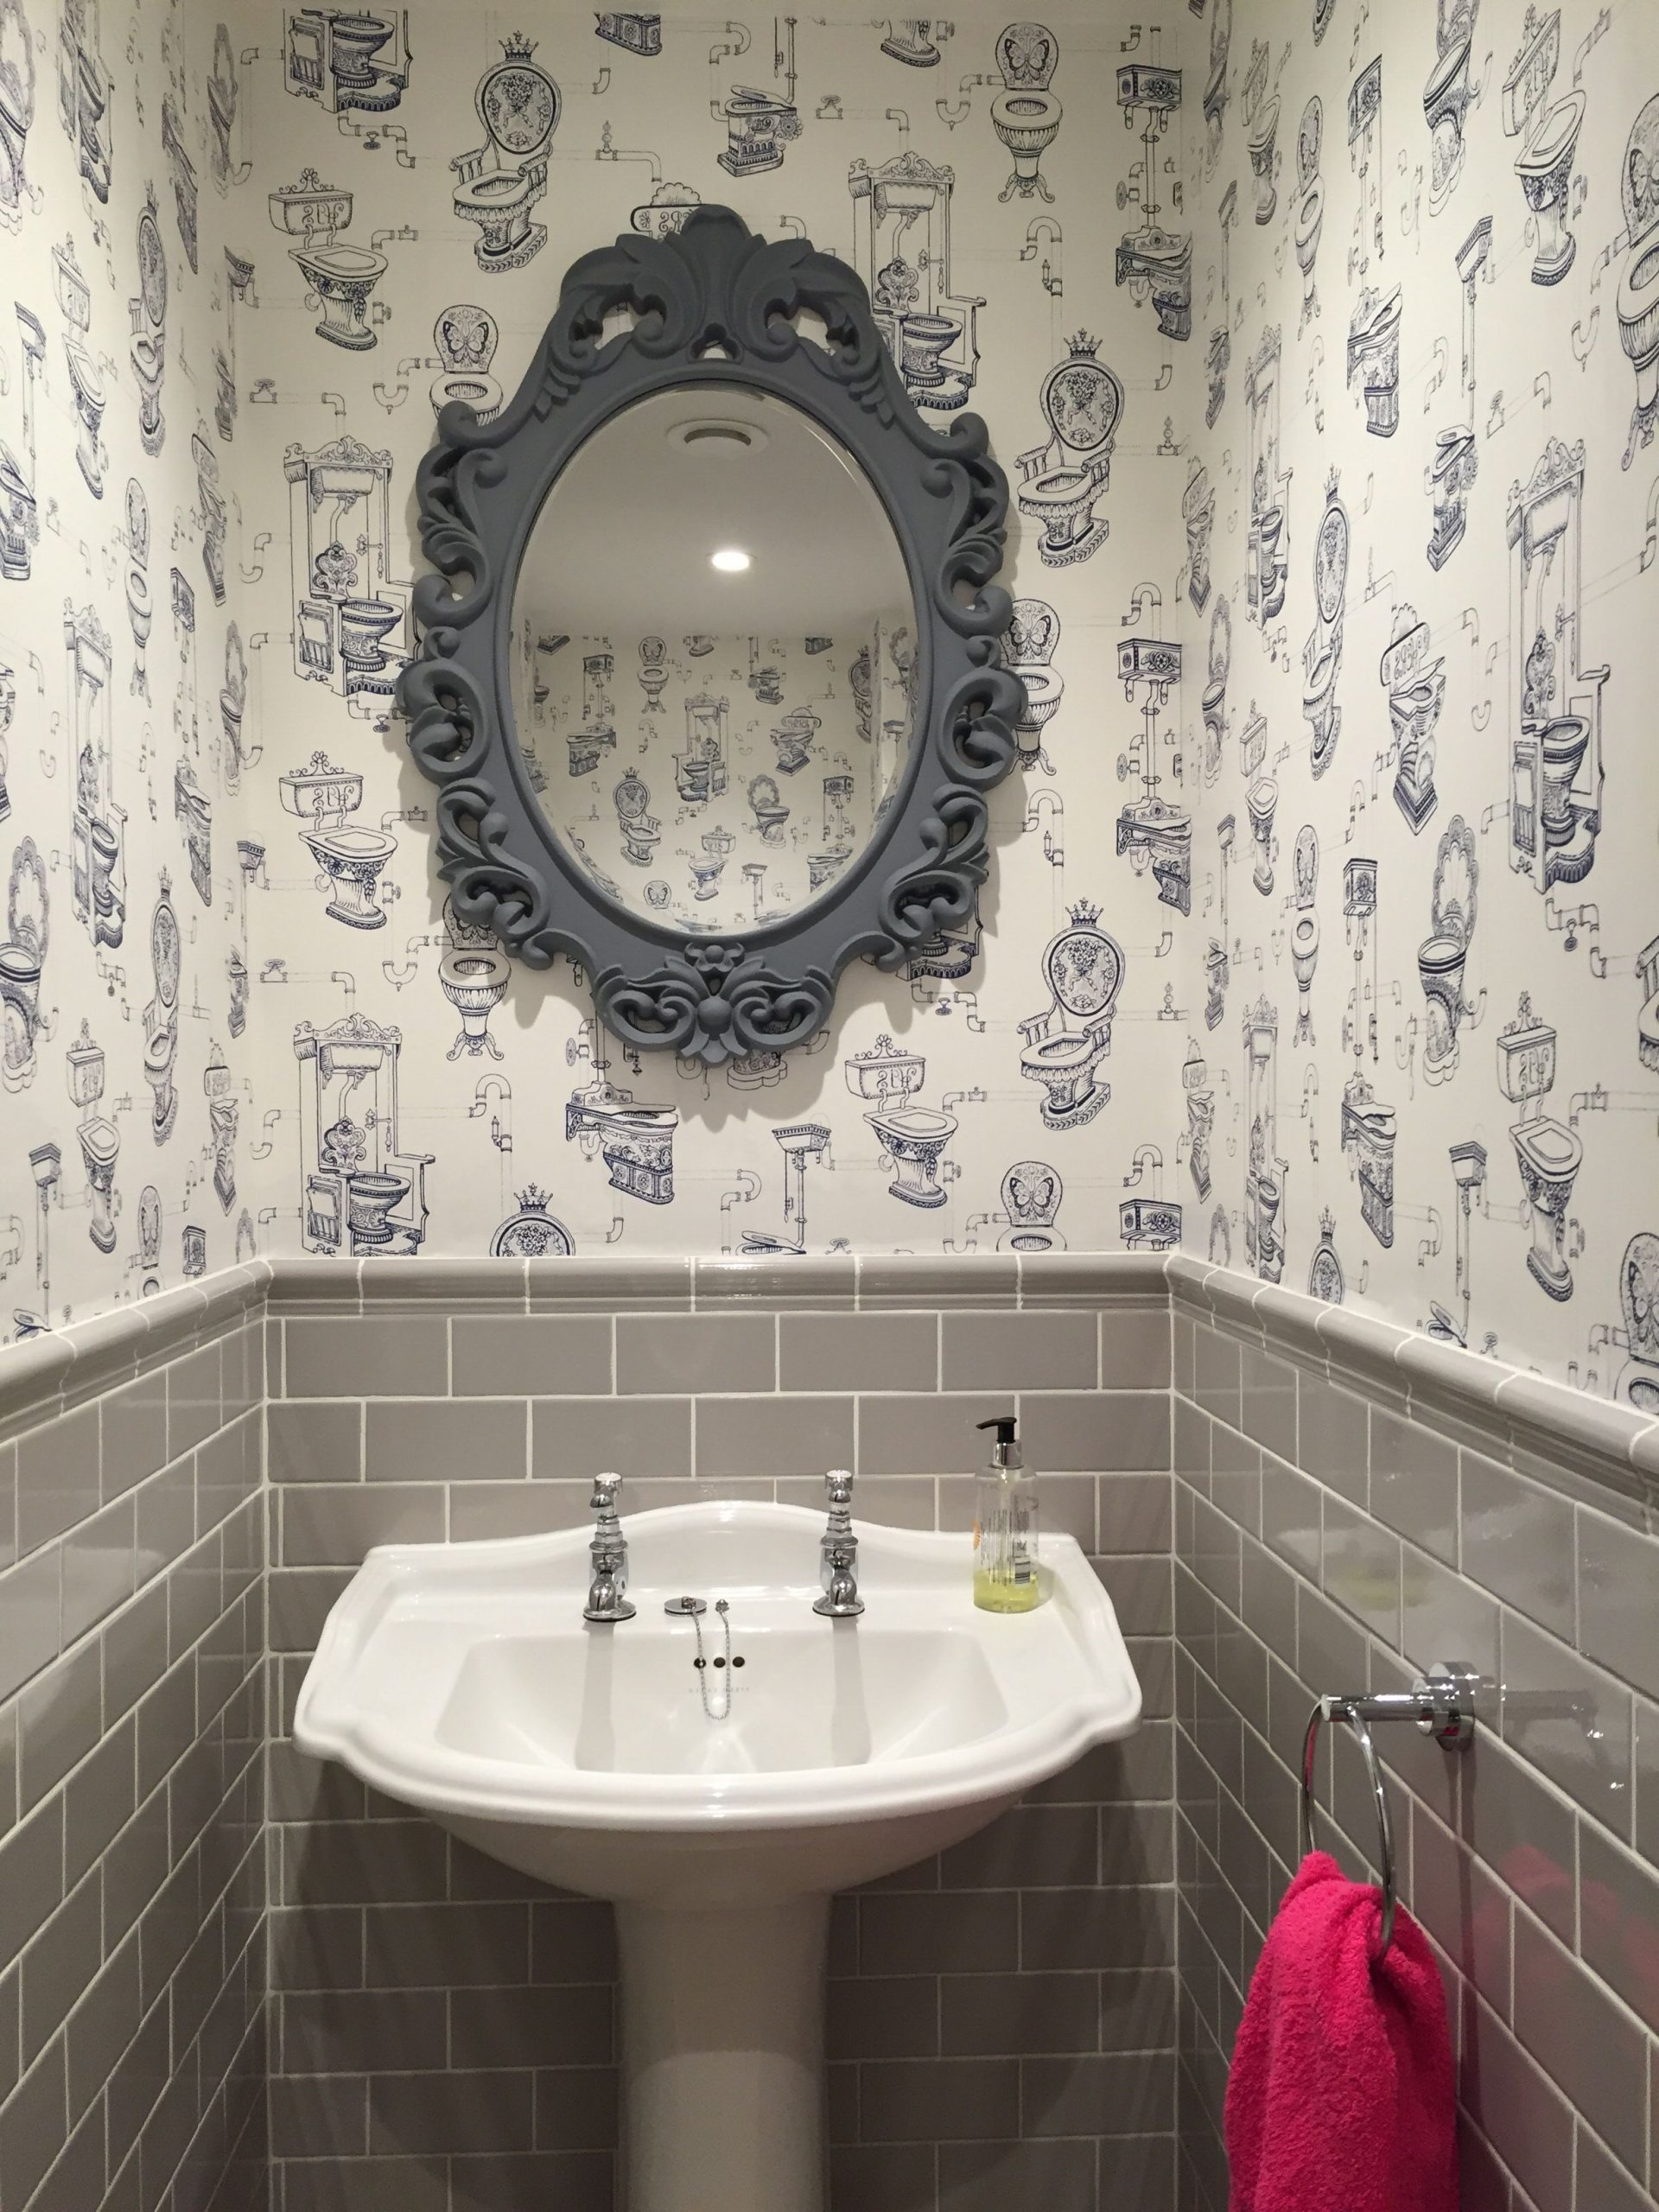 Our Downstairs Toilet, Fun Wallpaper From Graham & Brown 10+ Downstairs Bathroom Wallpaper Inspirations